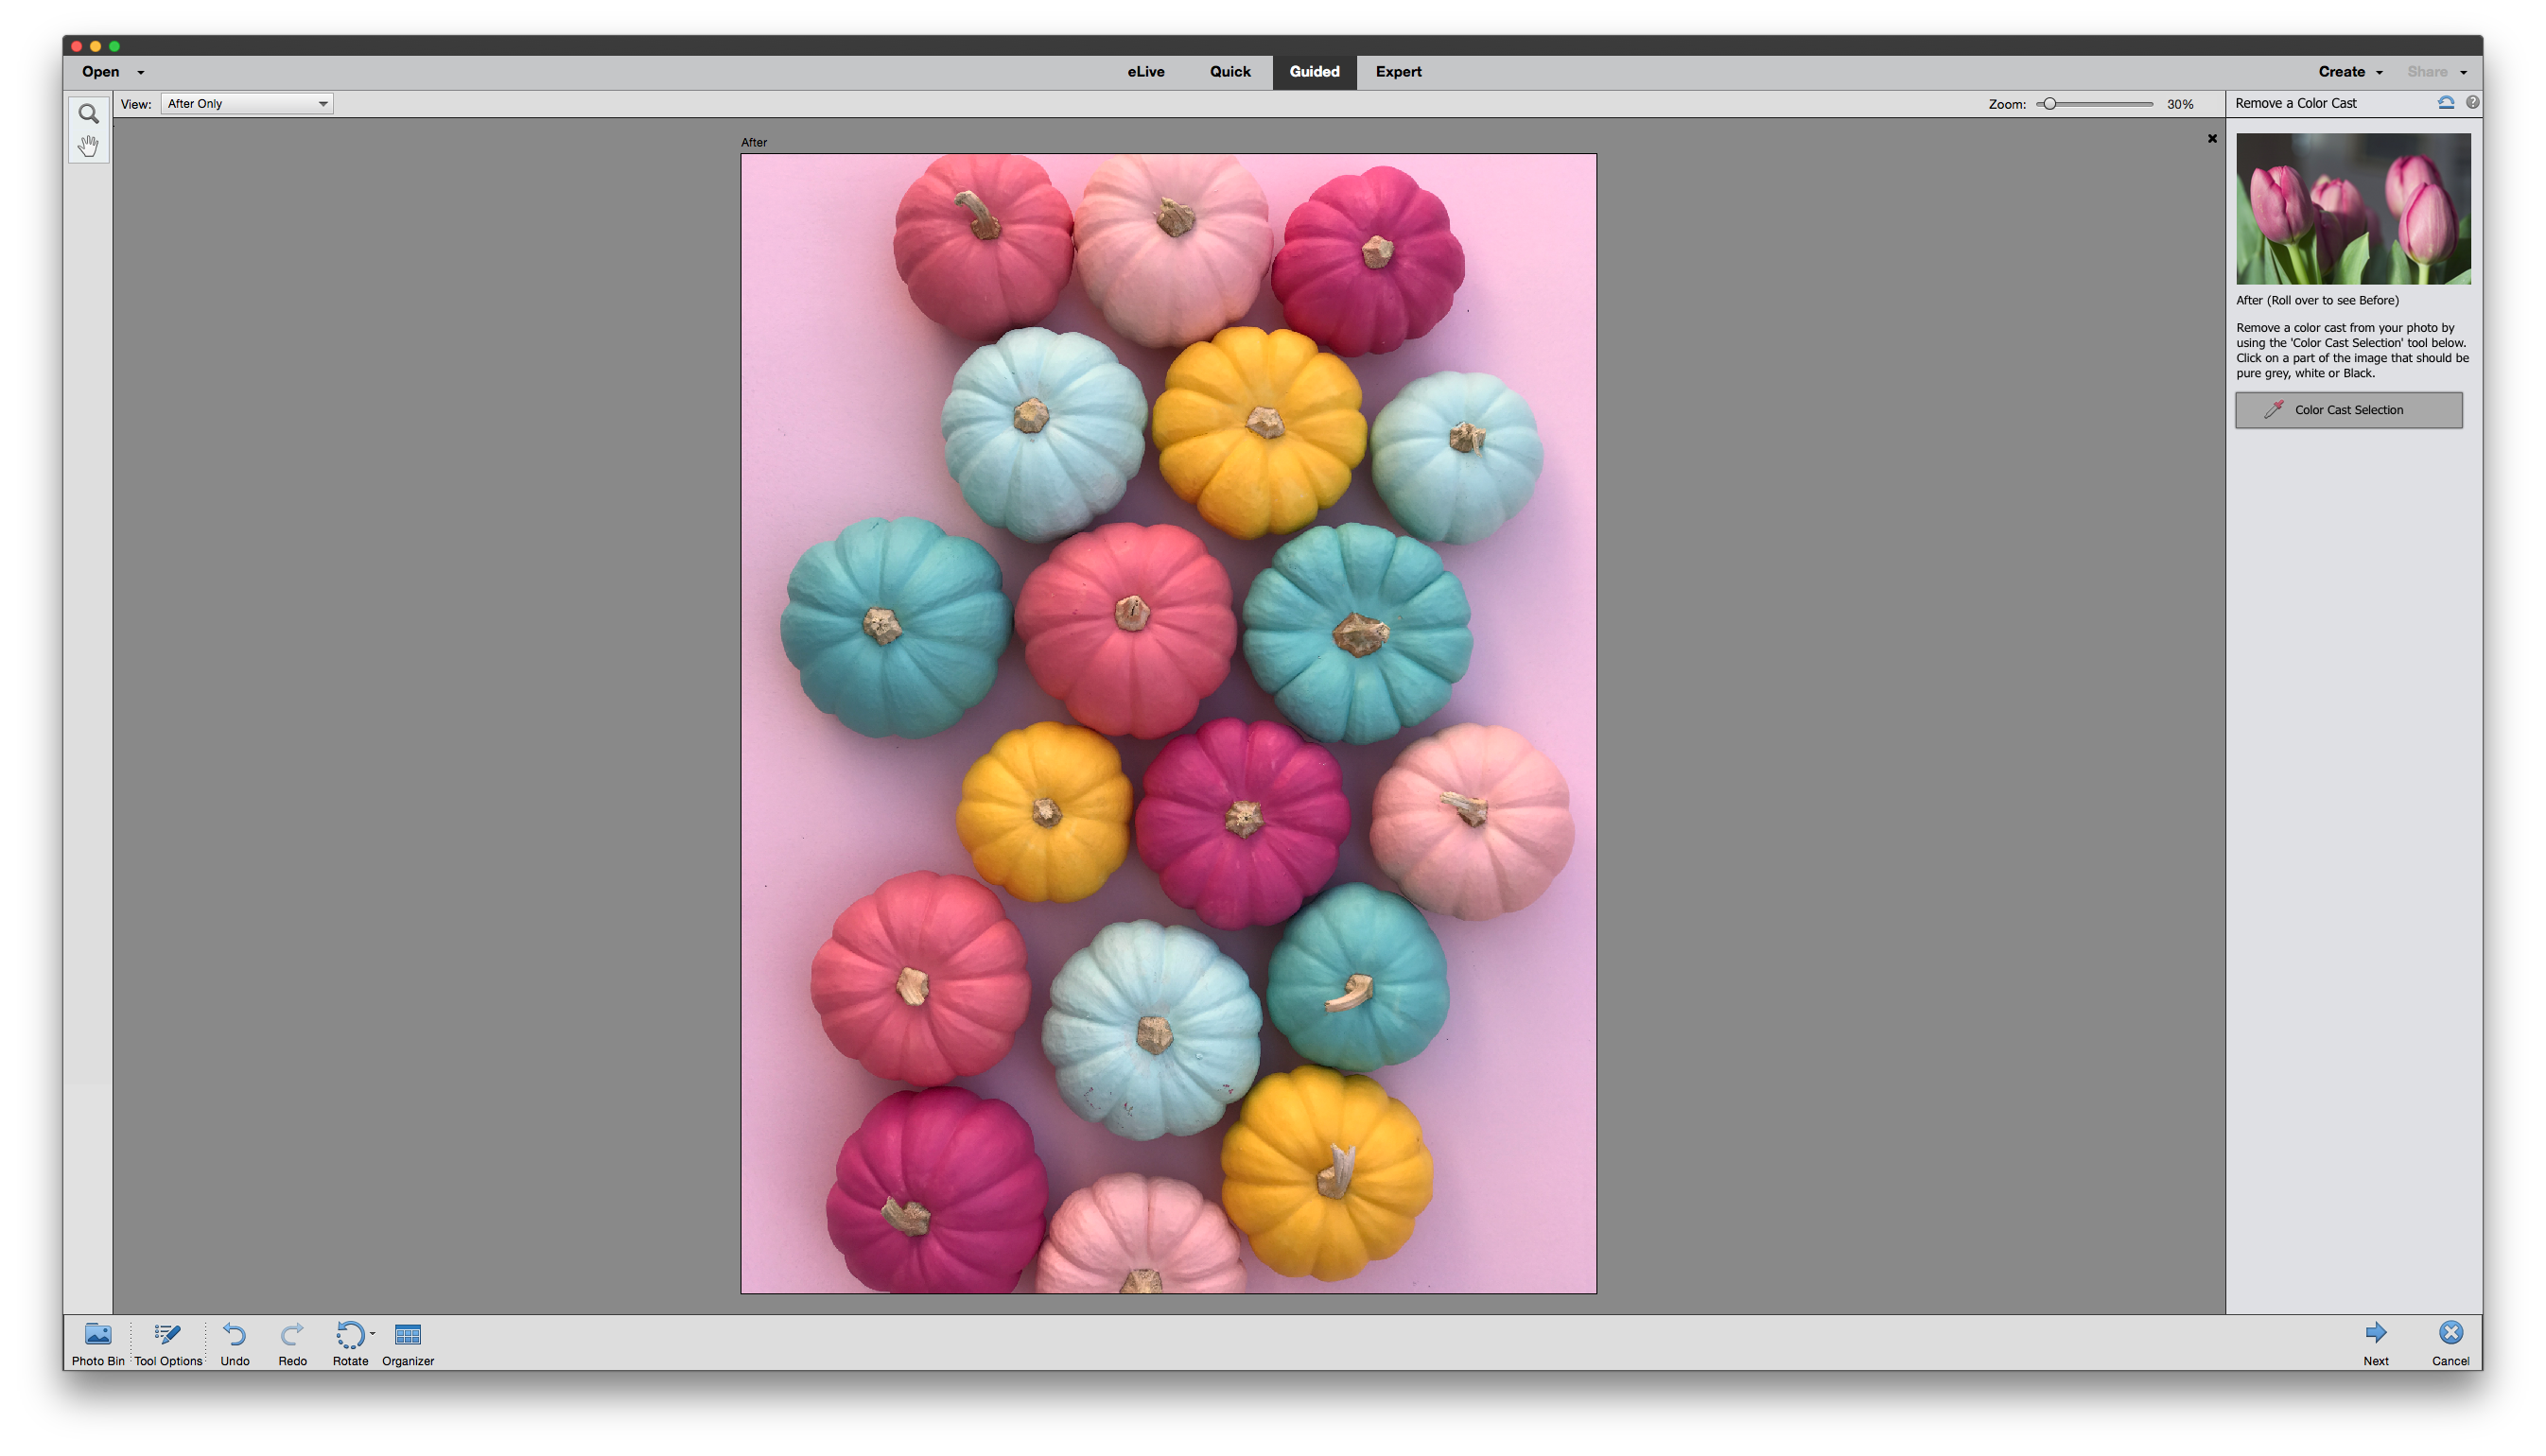 The Remove Color Cast guided edit in Photoshop Elements 15 makes it super easy to correct the white balance in a photo.